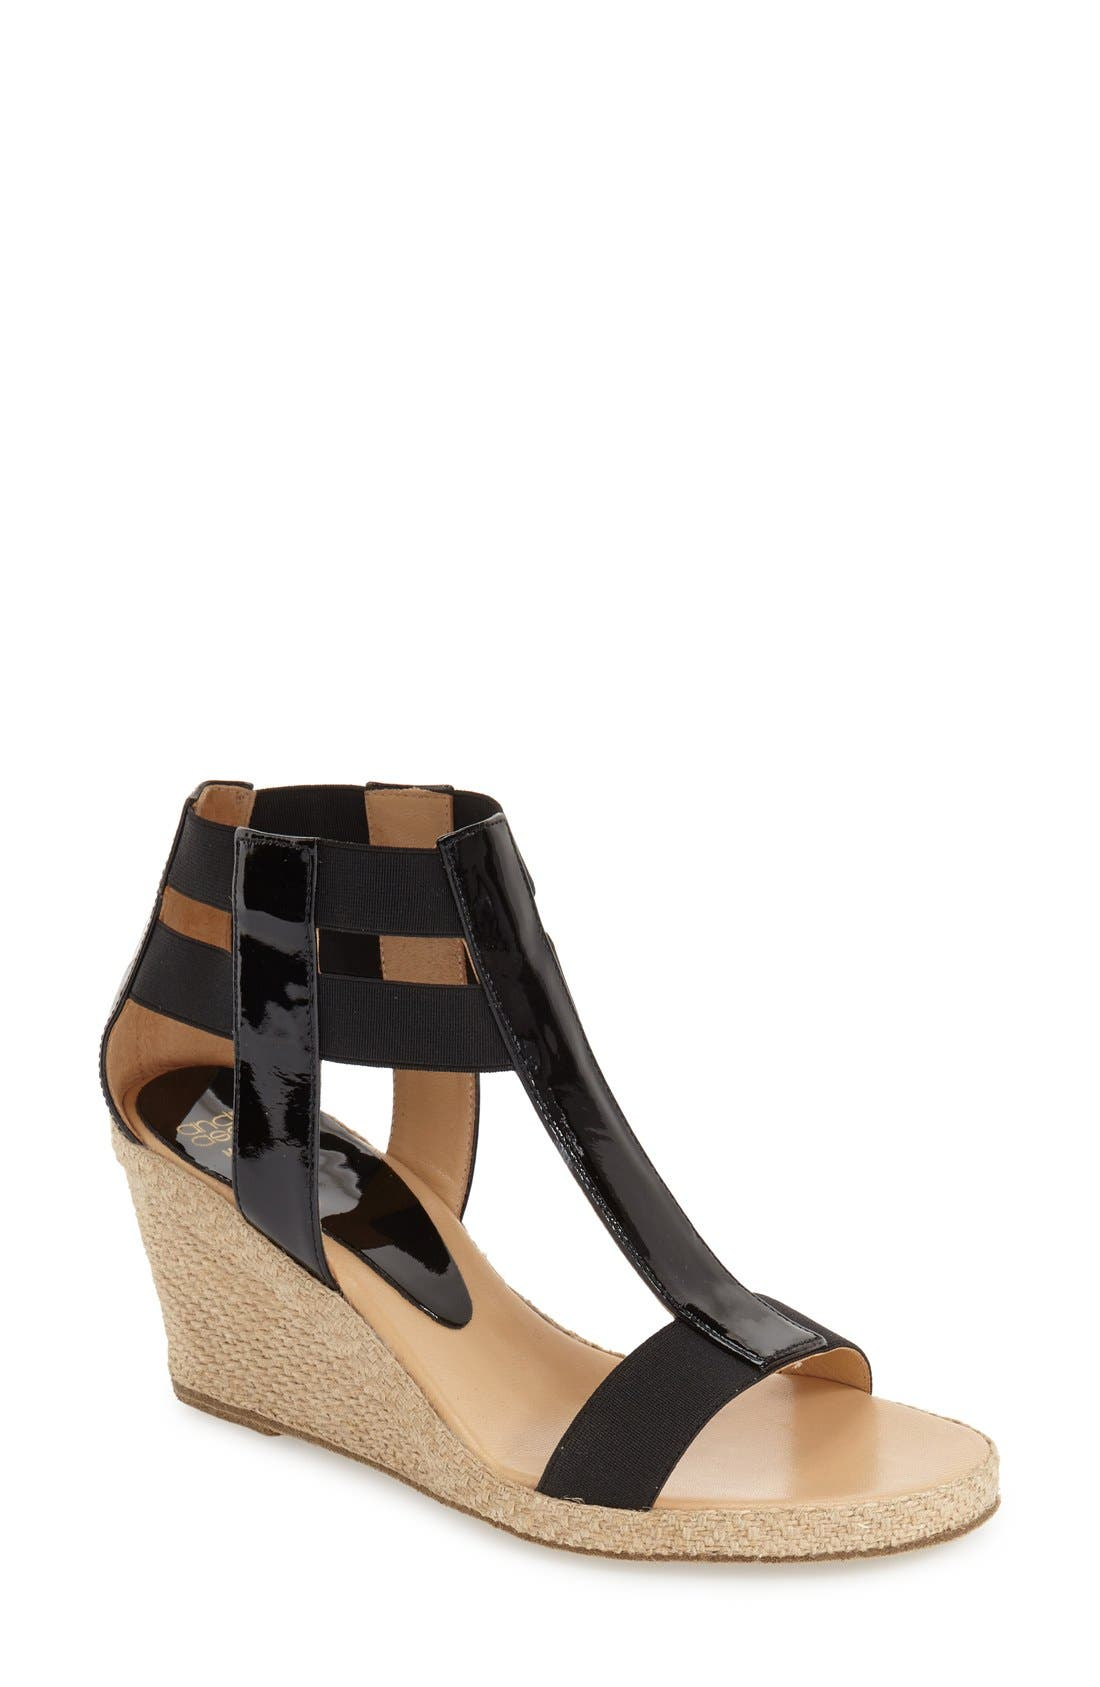 Alternate Image 1 Selected - André Assous 'Pippi' Espadrille Wedge Sandal (Women)